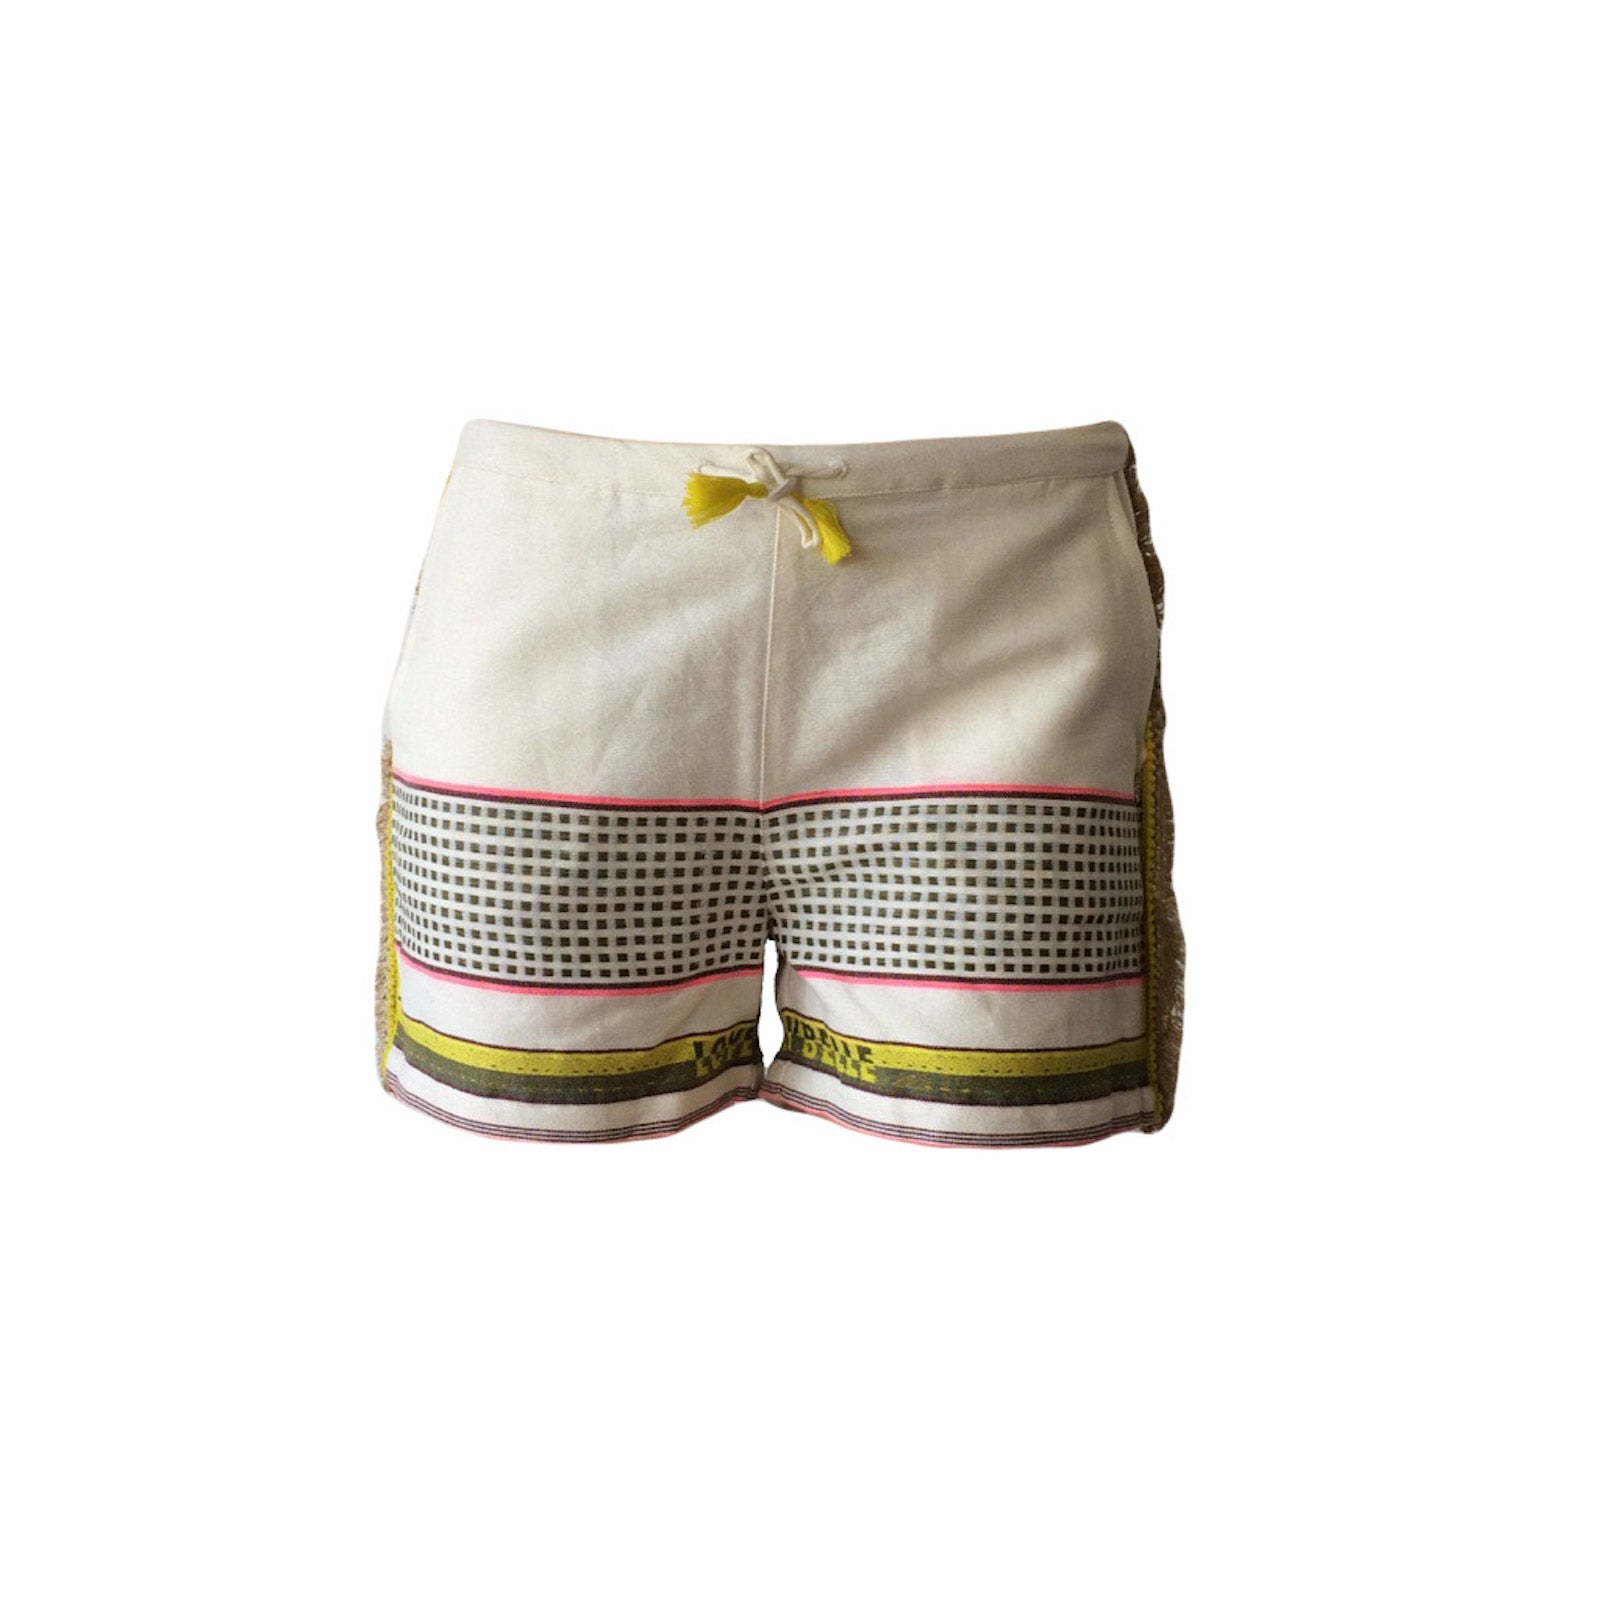 These white fringed beach shorts are crafted from crisp cotton and printed in high-summer patterns. The shorts are finished with a fringed tape trim, how totally awesome is thatjQuery111109380586421008492_1506663365975